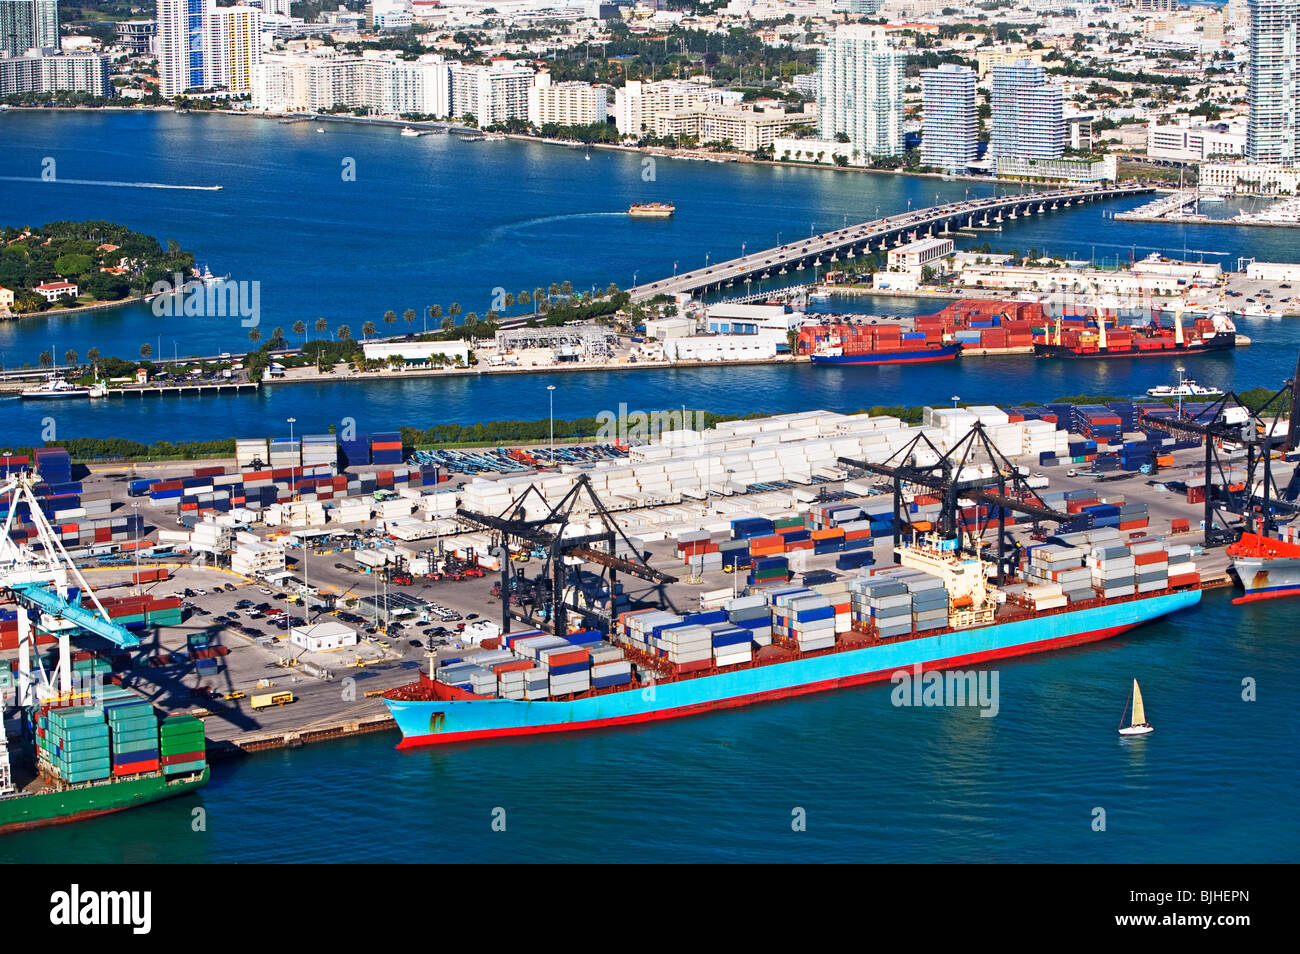 Commercial Dock - Stock Image